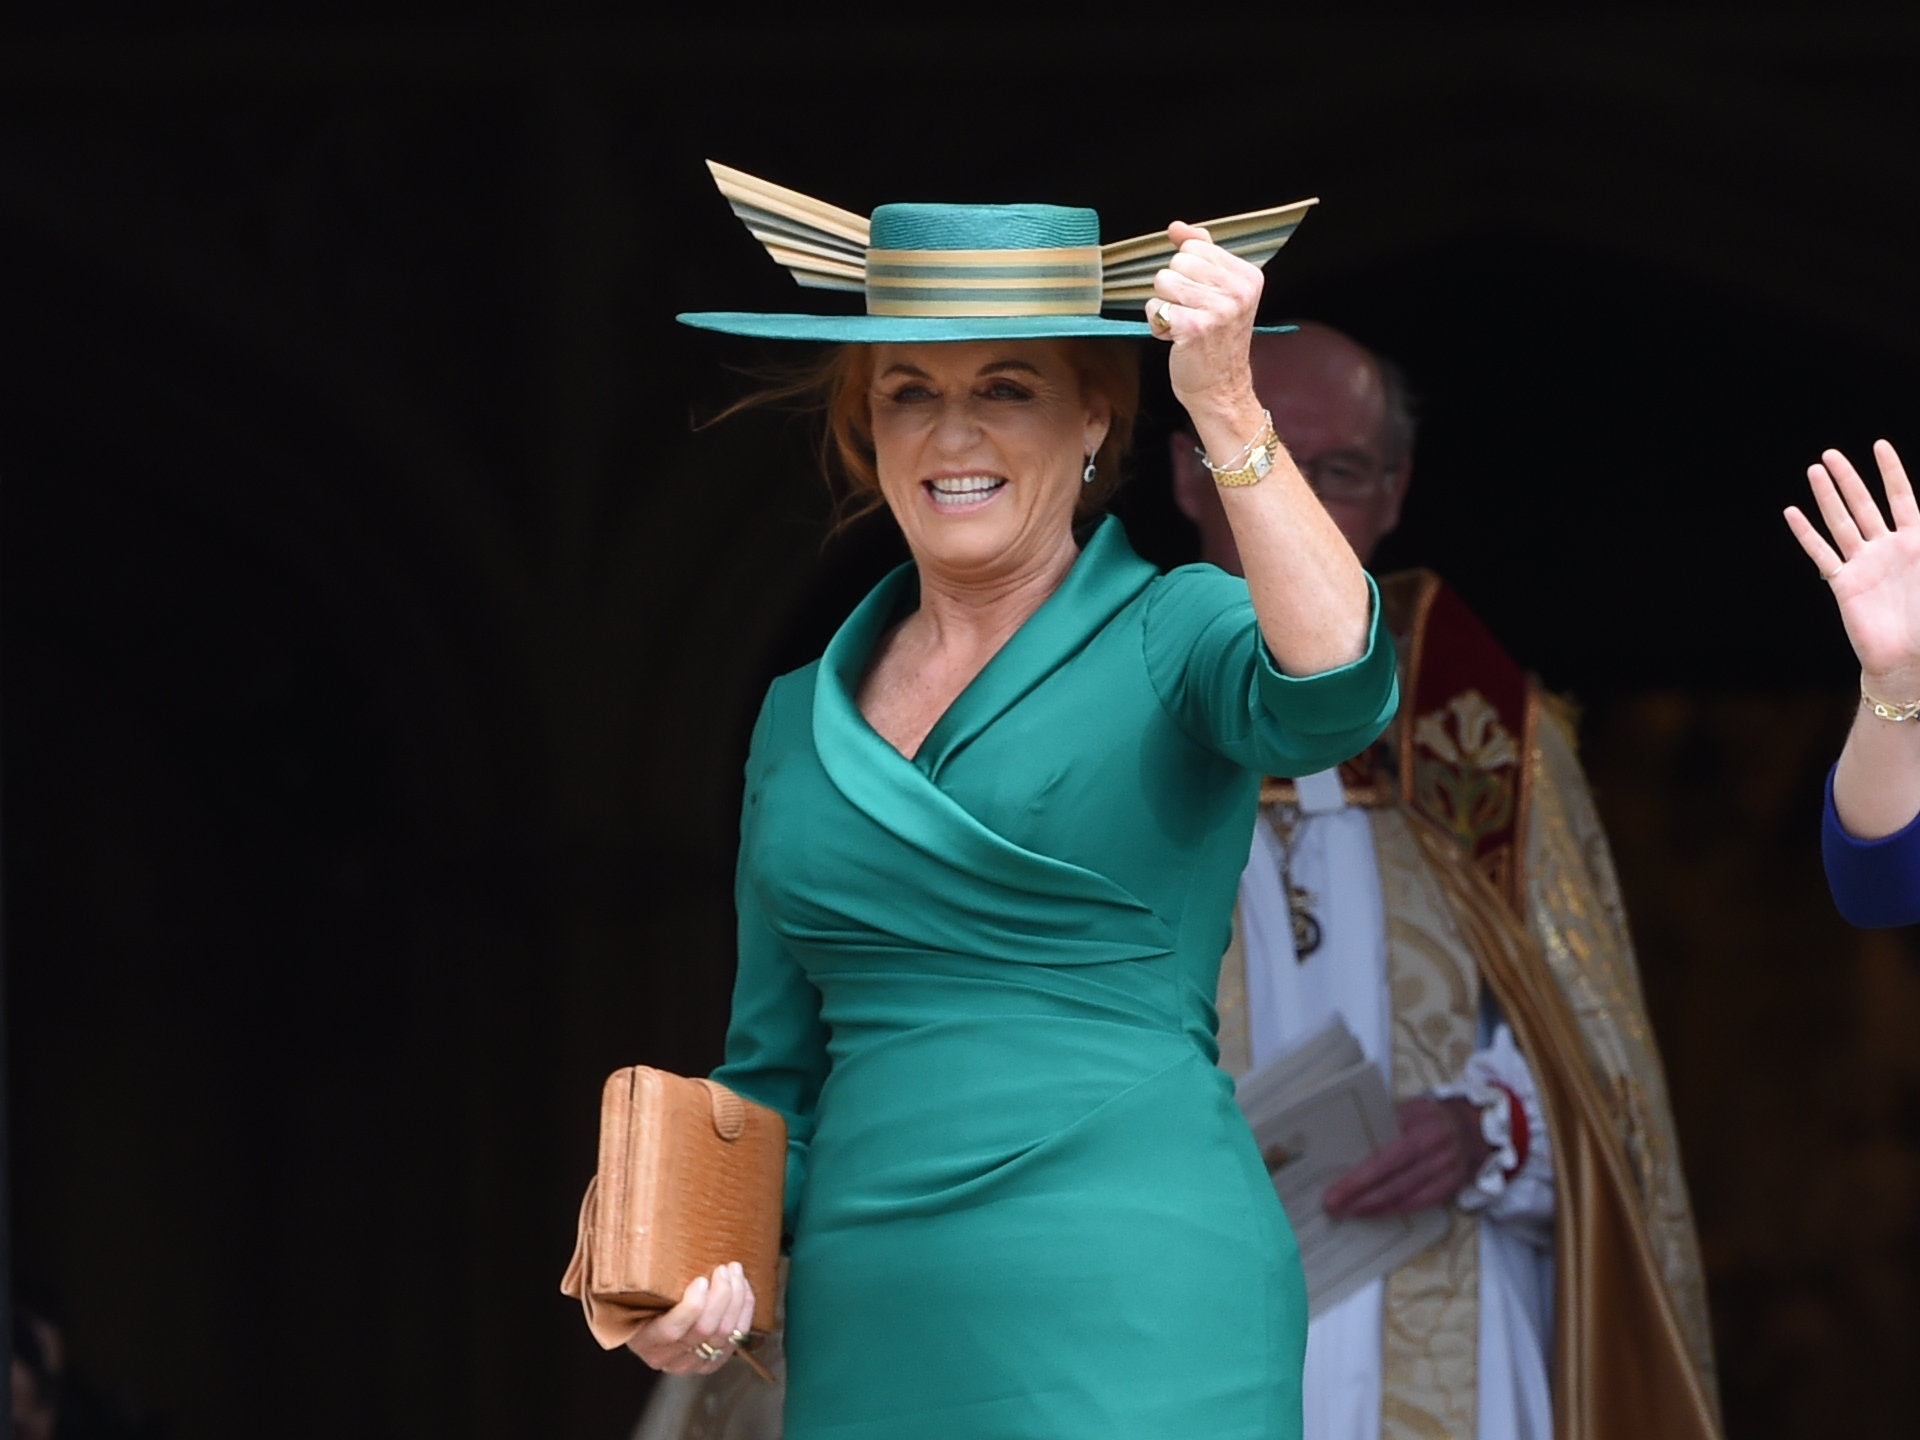 Fergie s Royal Wedding Hat Looks Like The Golden Snitch From  Harry  Potter 05d694c72f9